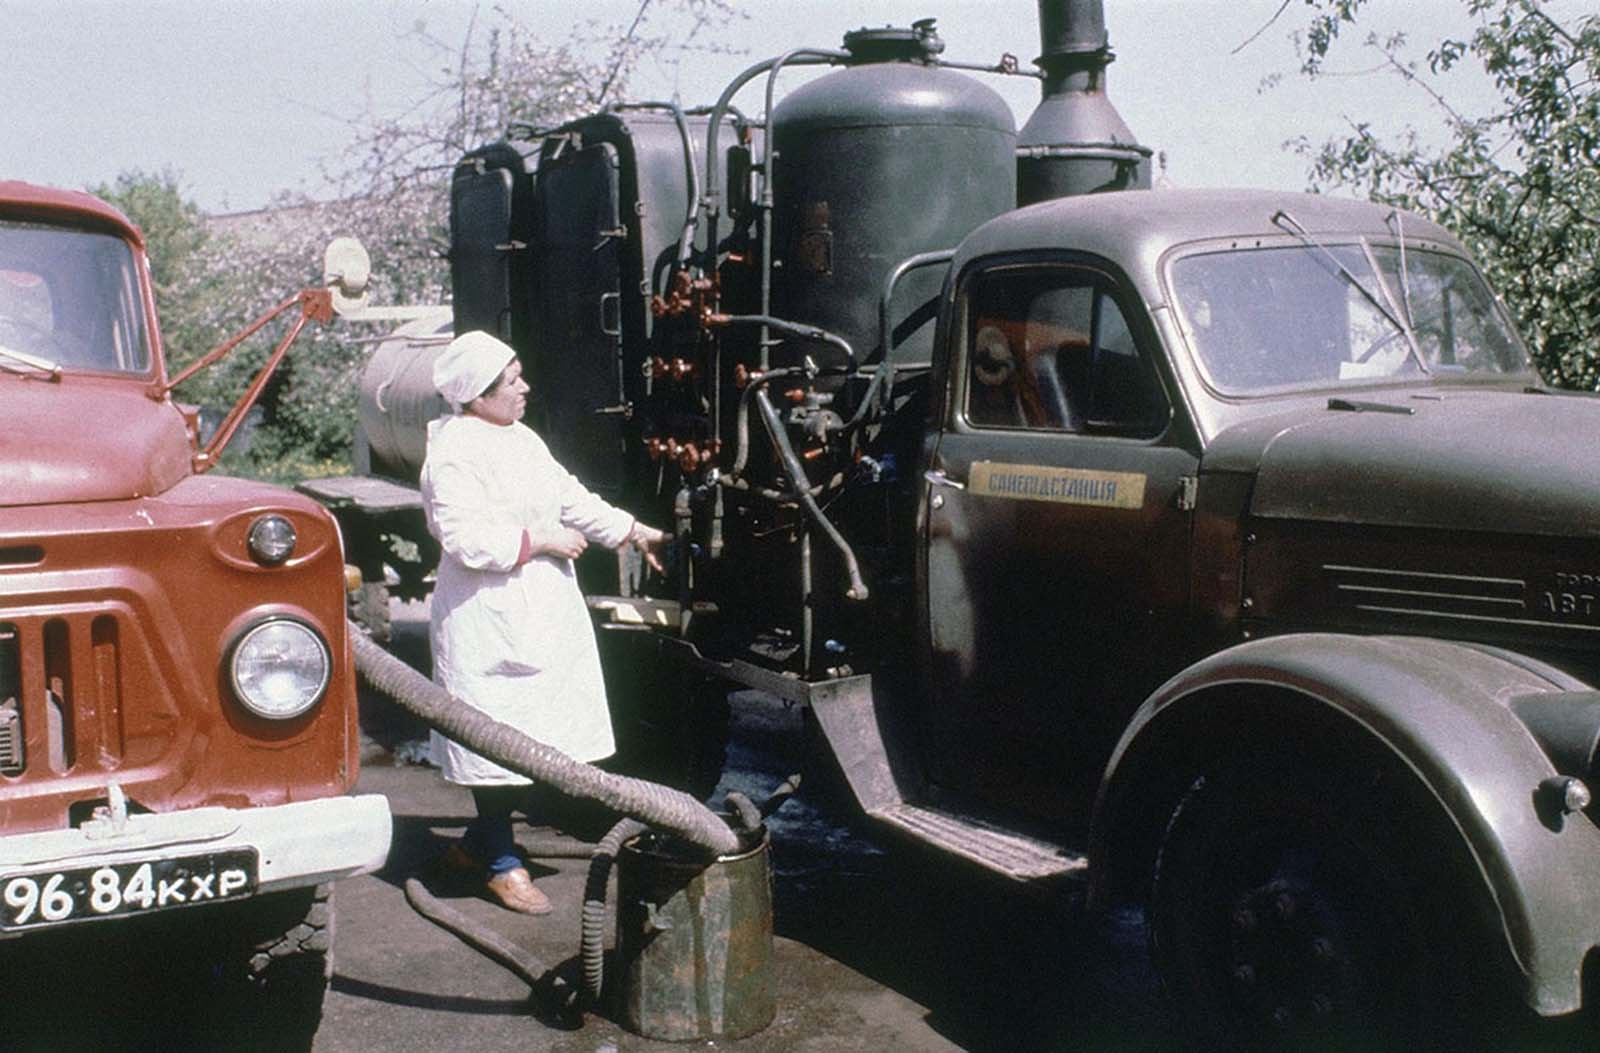 A Soviet technician prepares a tank truck with a solution designed to decontaminate people's clothes and equipment in Kiev on May 9, 1986.